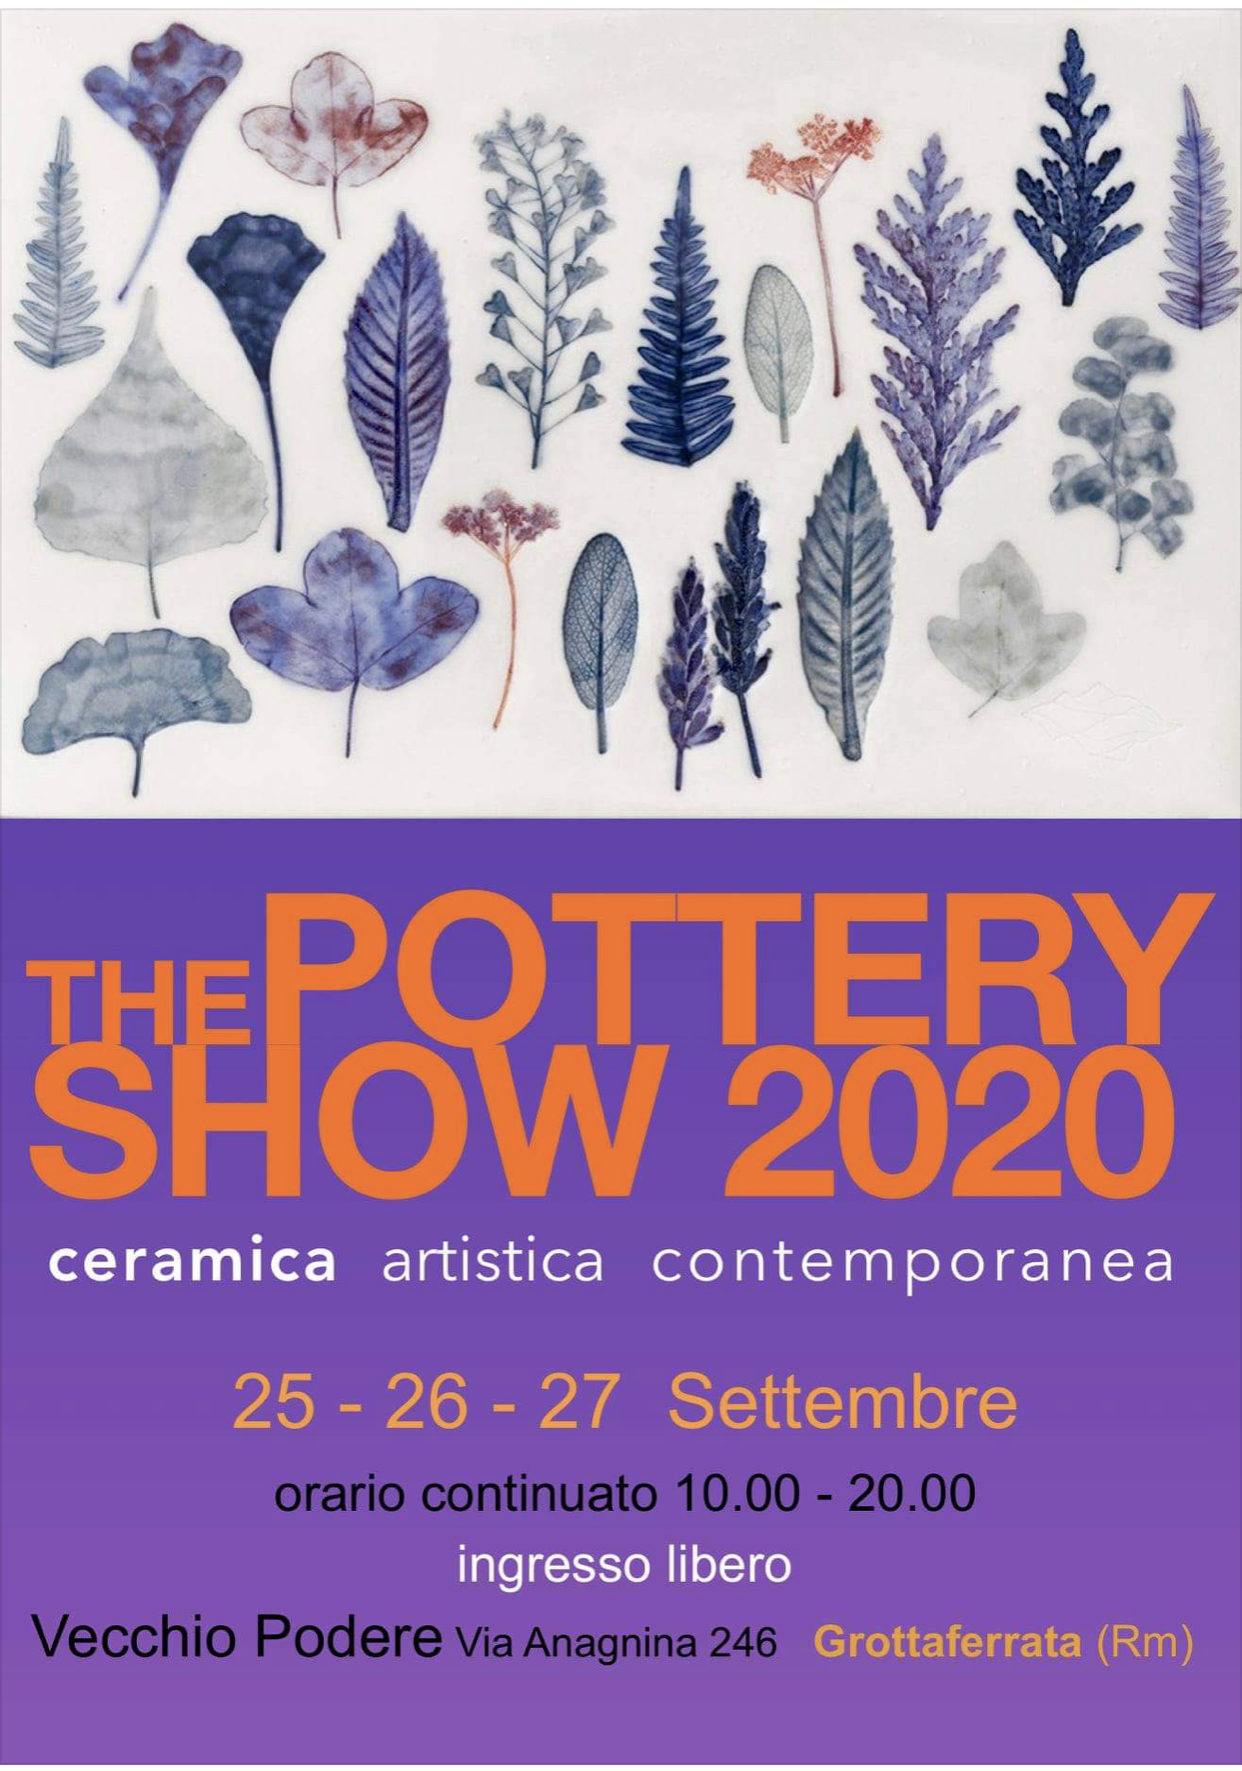 The Pottery Show 2020